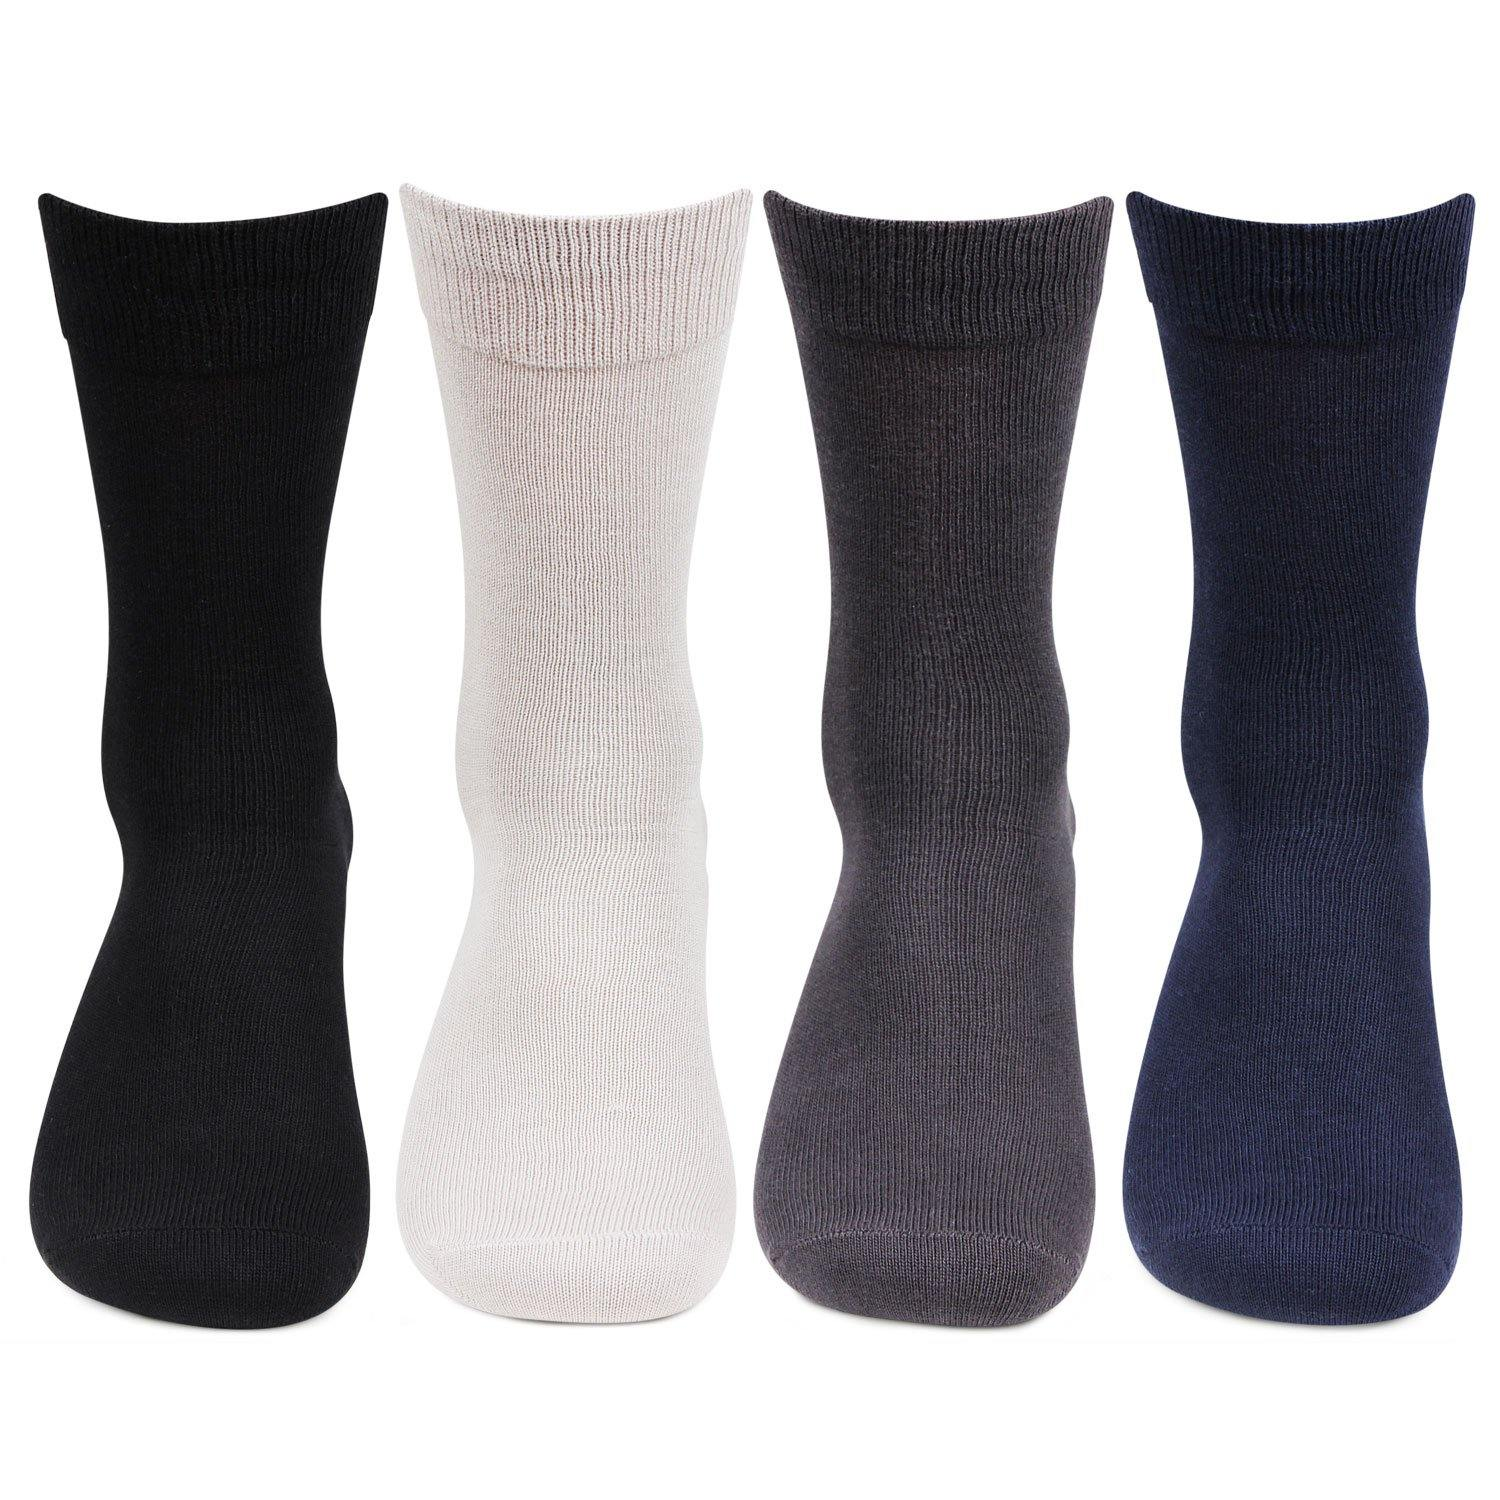 Men's Cotton Multicolored Plain Socks- Pack of 4